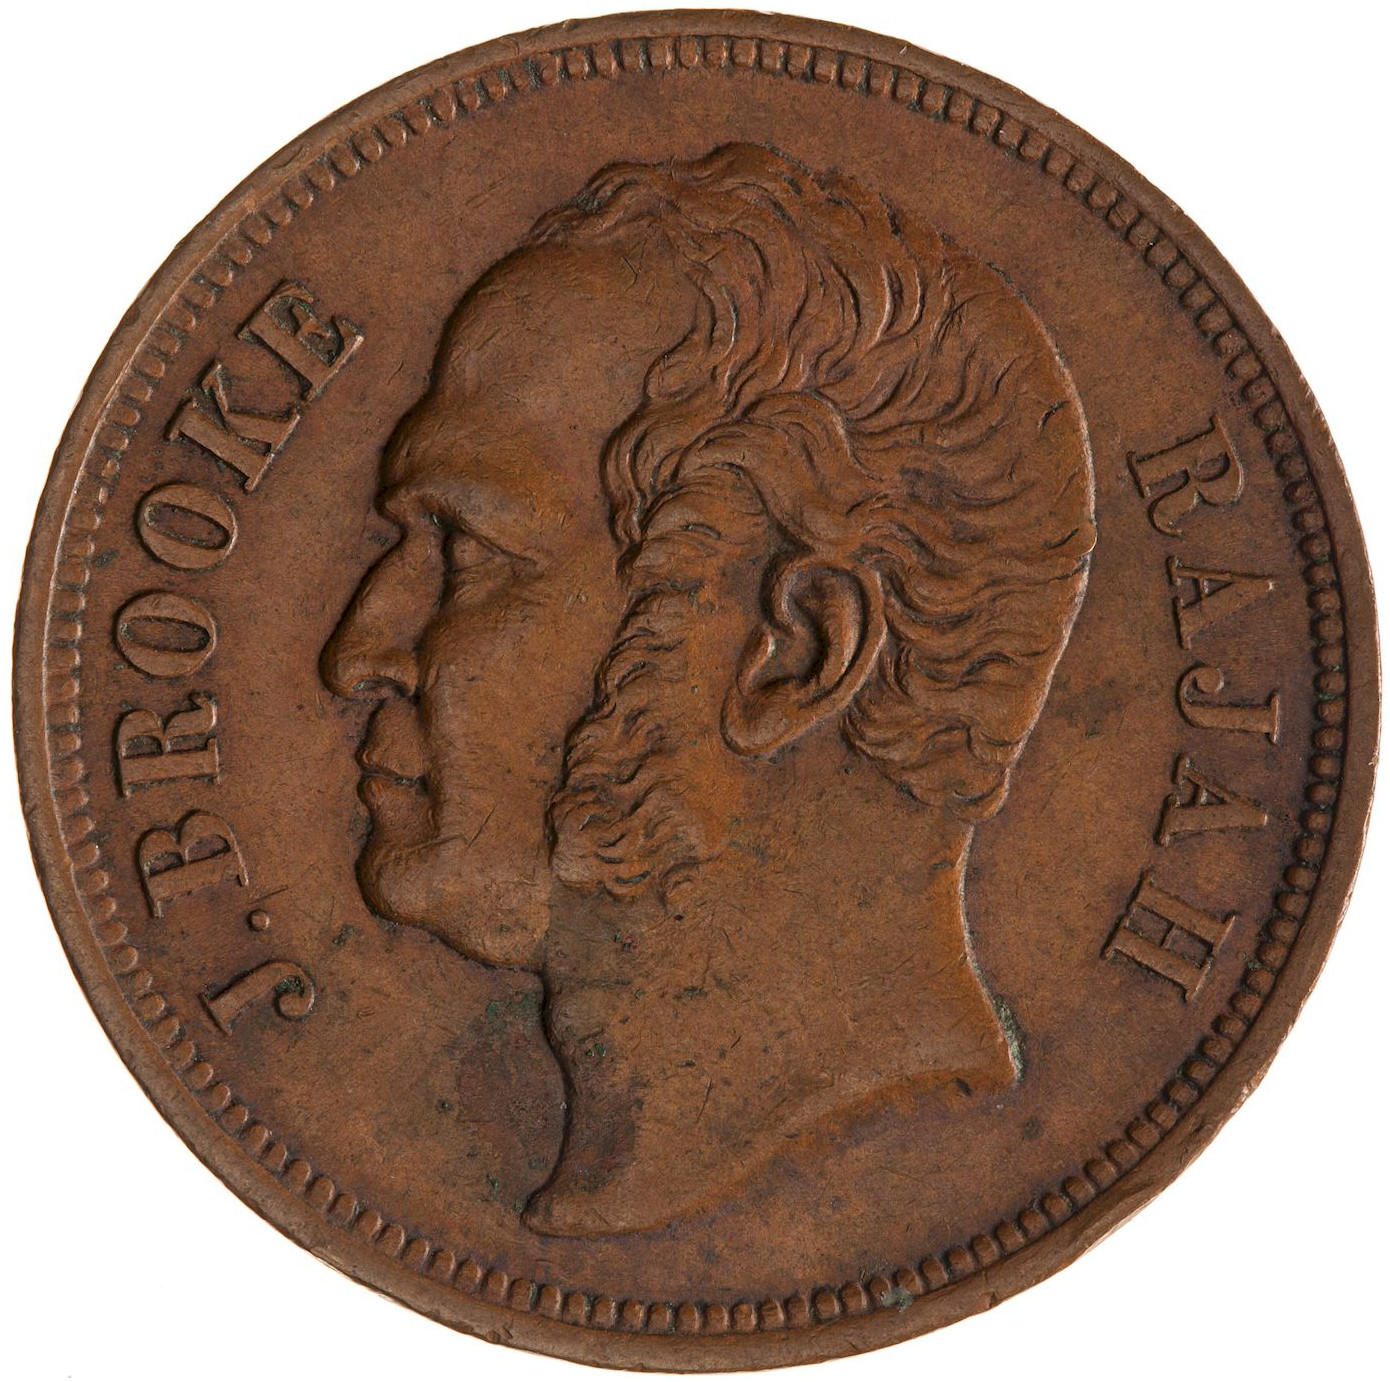 One Cent (Copper): Photo Coin - 1 Cent, Sarawak, 1863